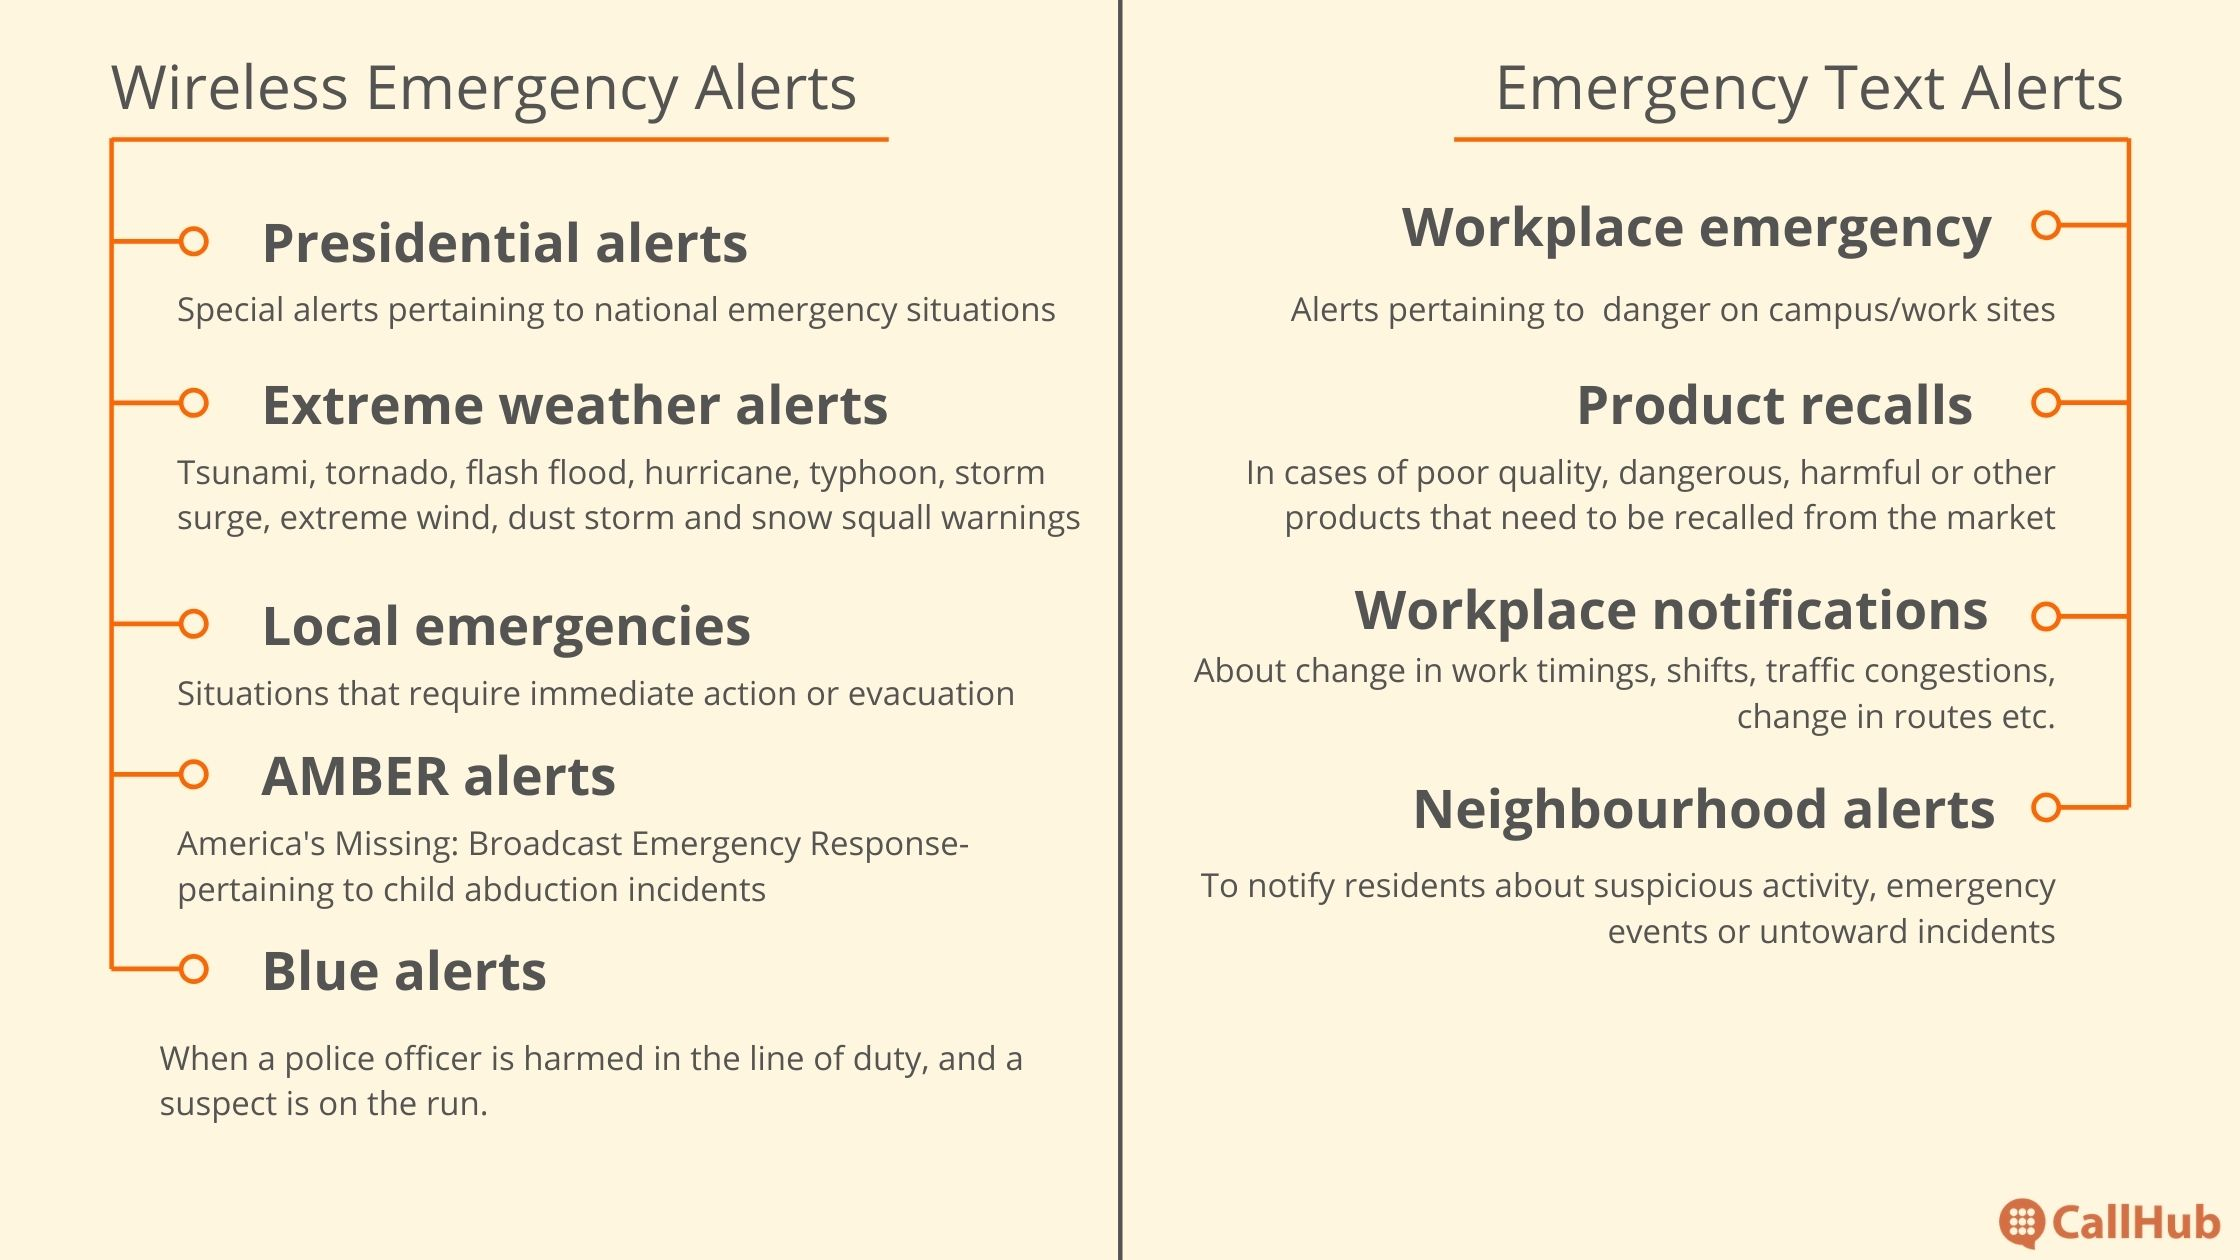 emergency-text-alerts-vs-wea-message